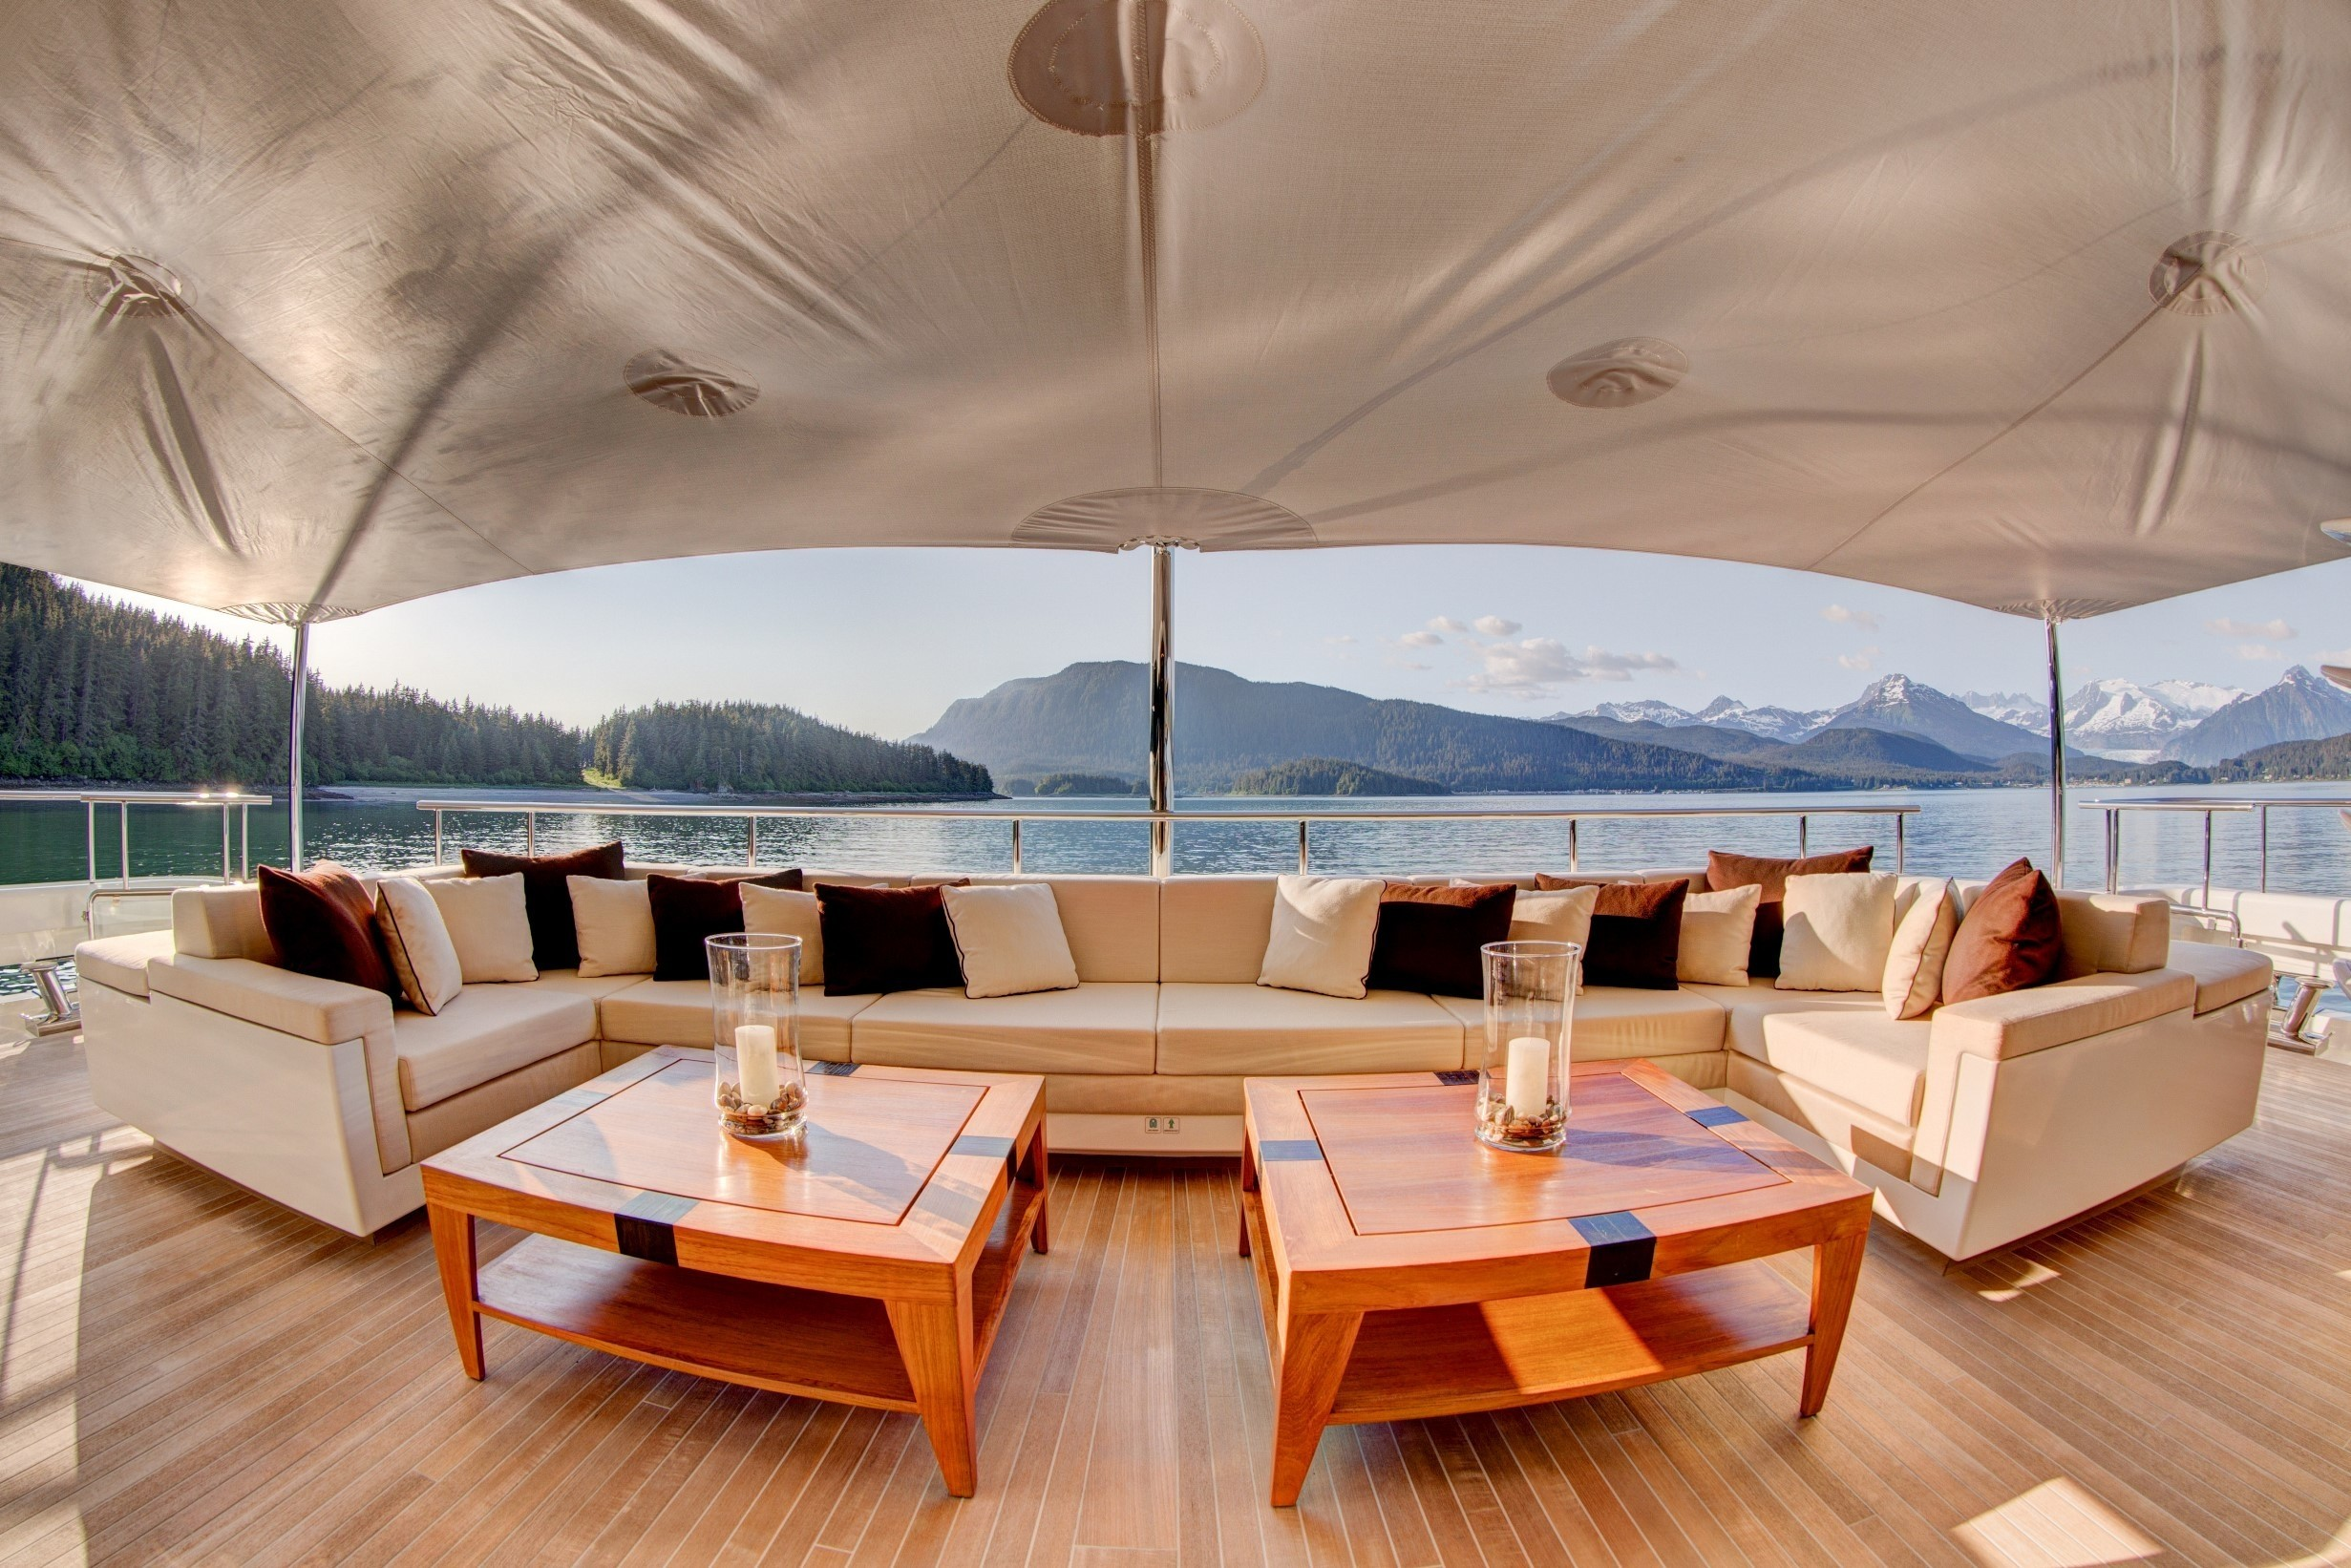 aft deck relaxation area